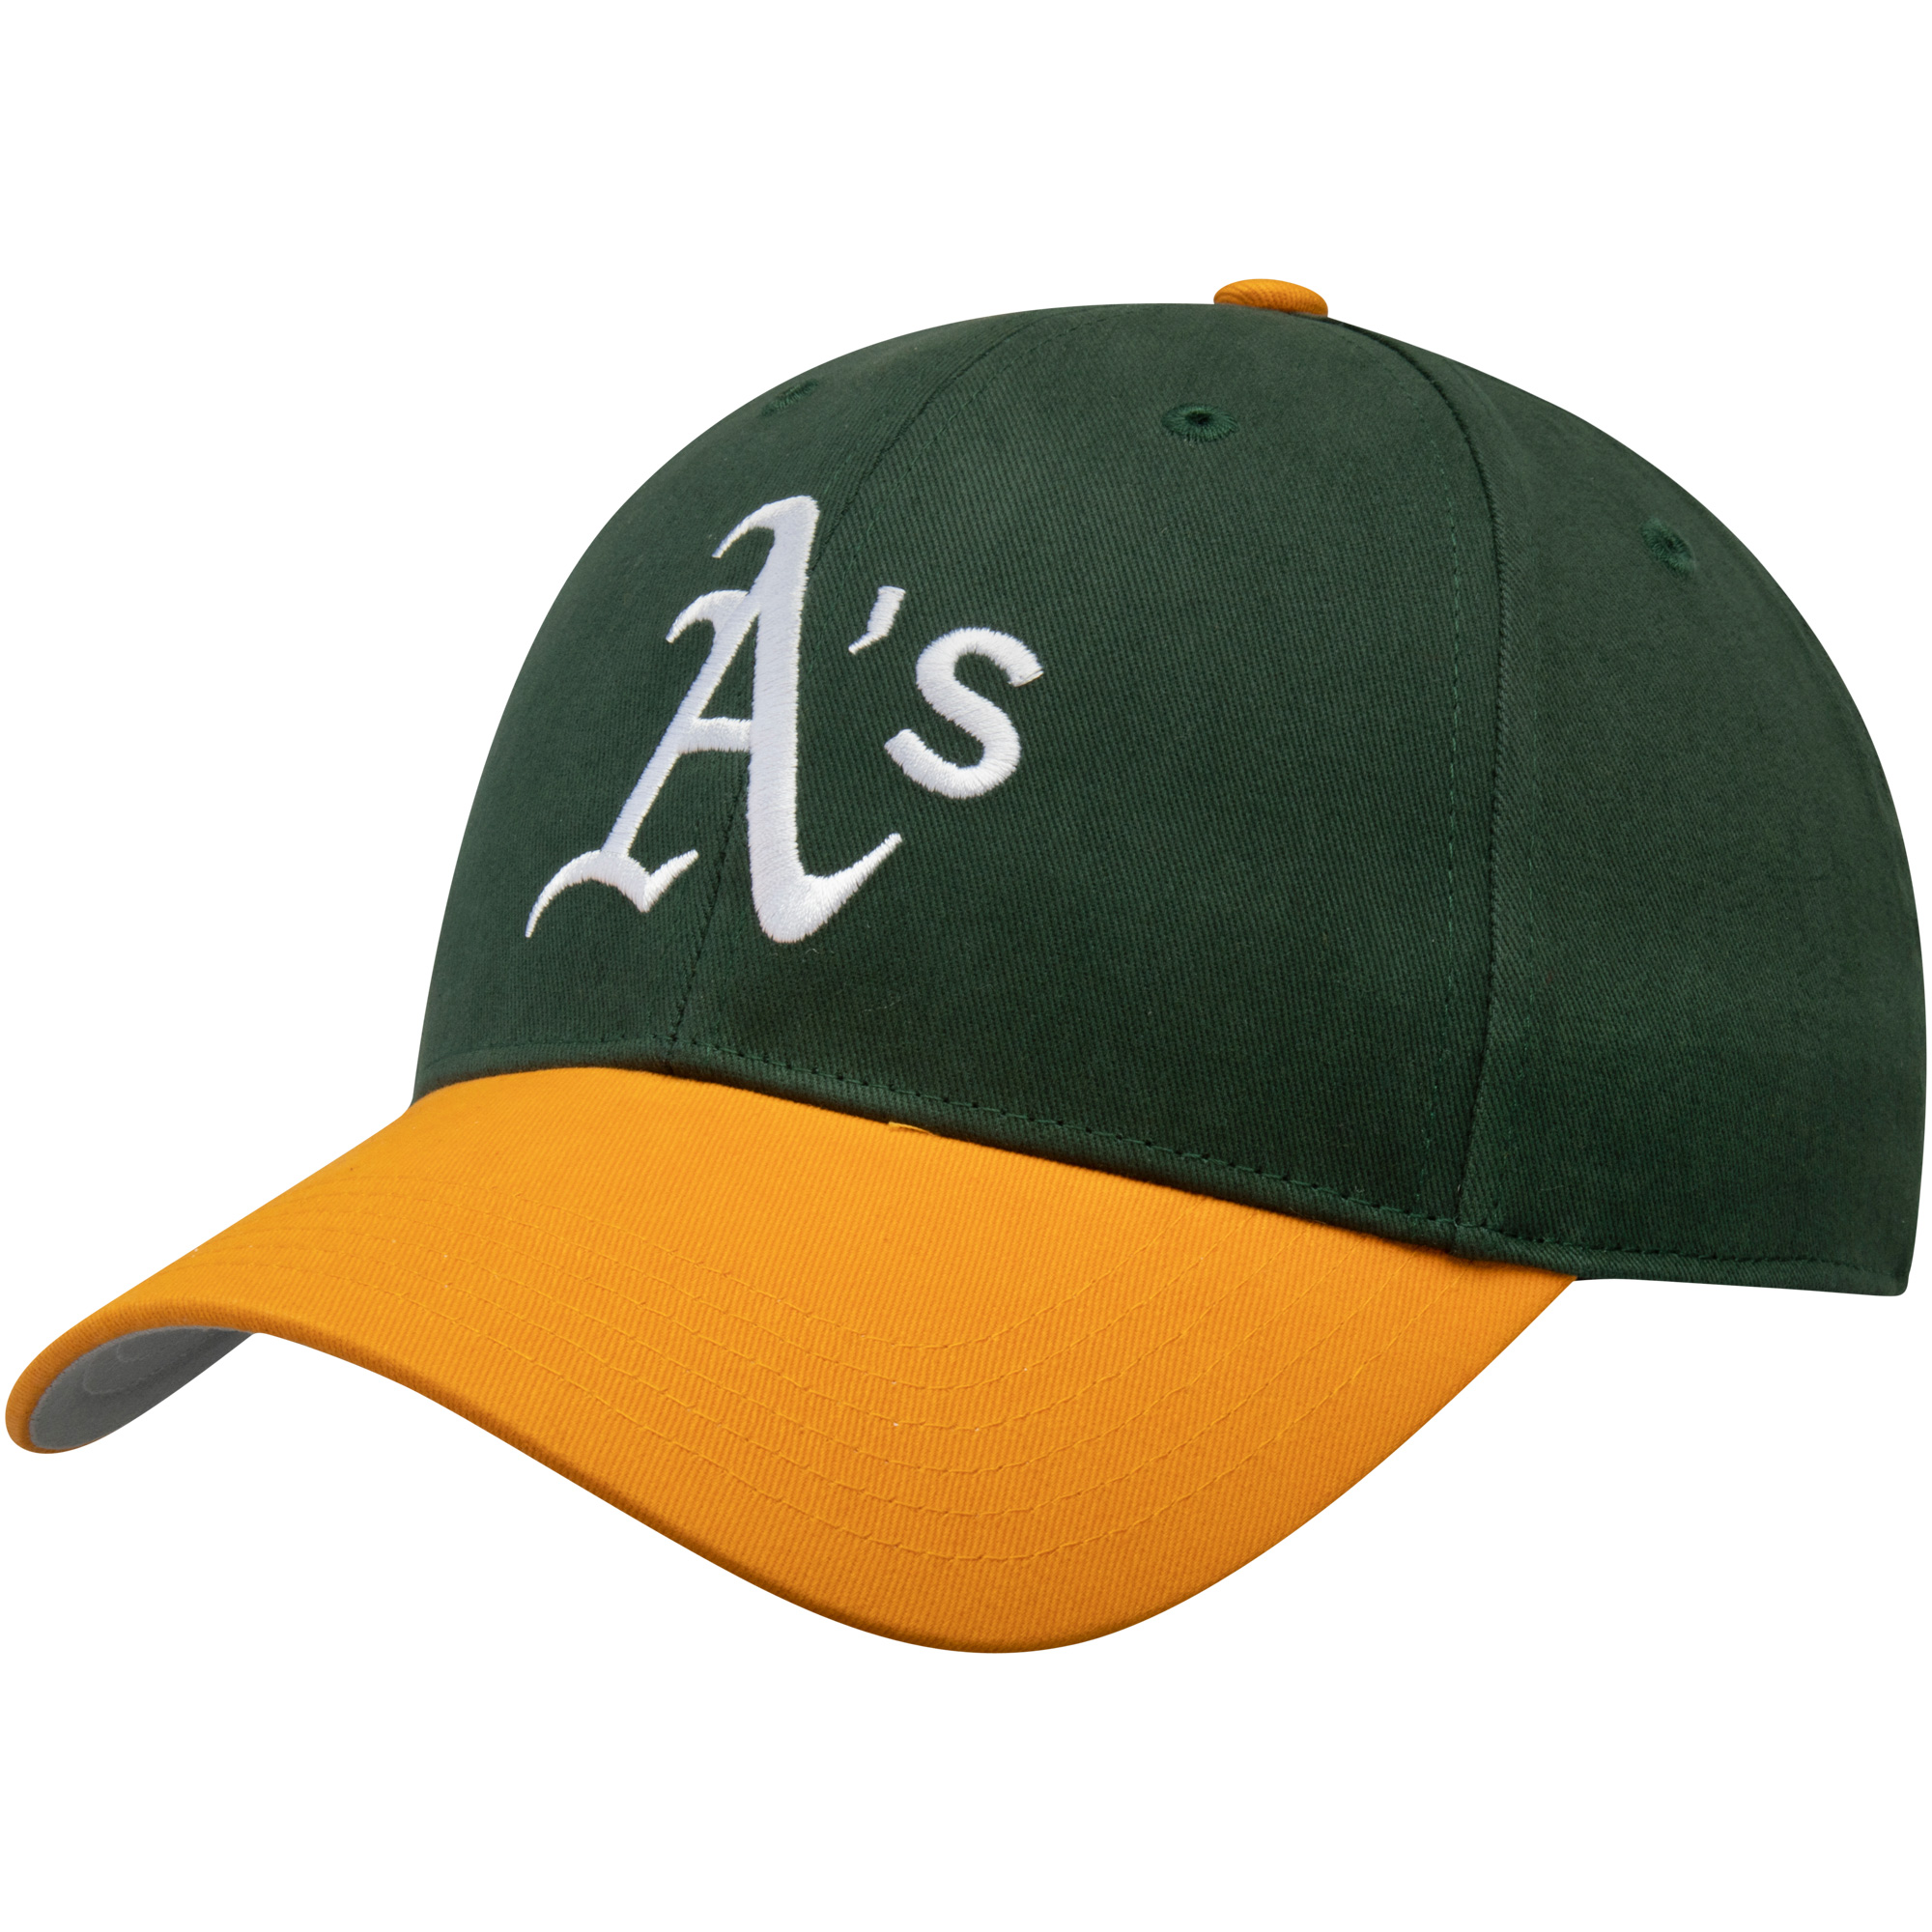 Oakland Athletics Fan Favorite Basic Adjustable Hat - Green - OSFA